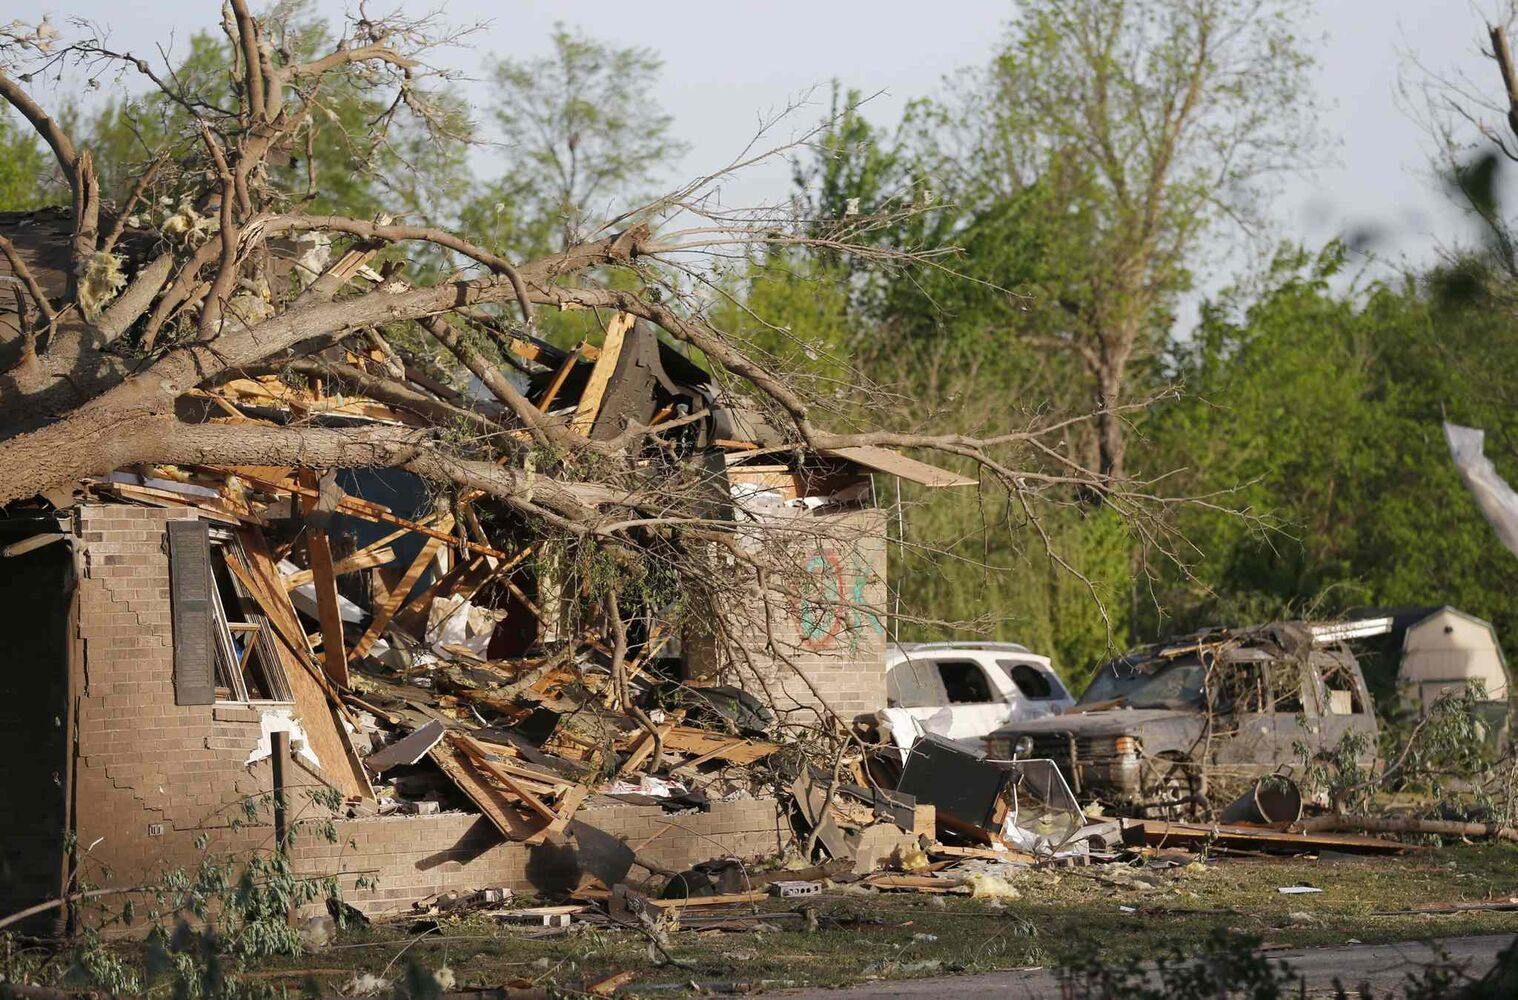 A tornado-damaged home awaits clean up and repairs after a Sunday tornado in Baxter Springs, Kan., Monday, April 28, 2014.  (Orlin Wagner / The Associated Press)